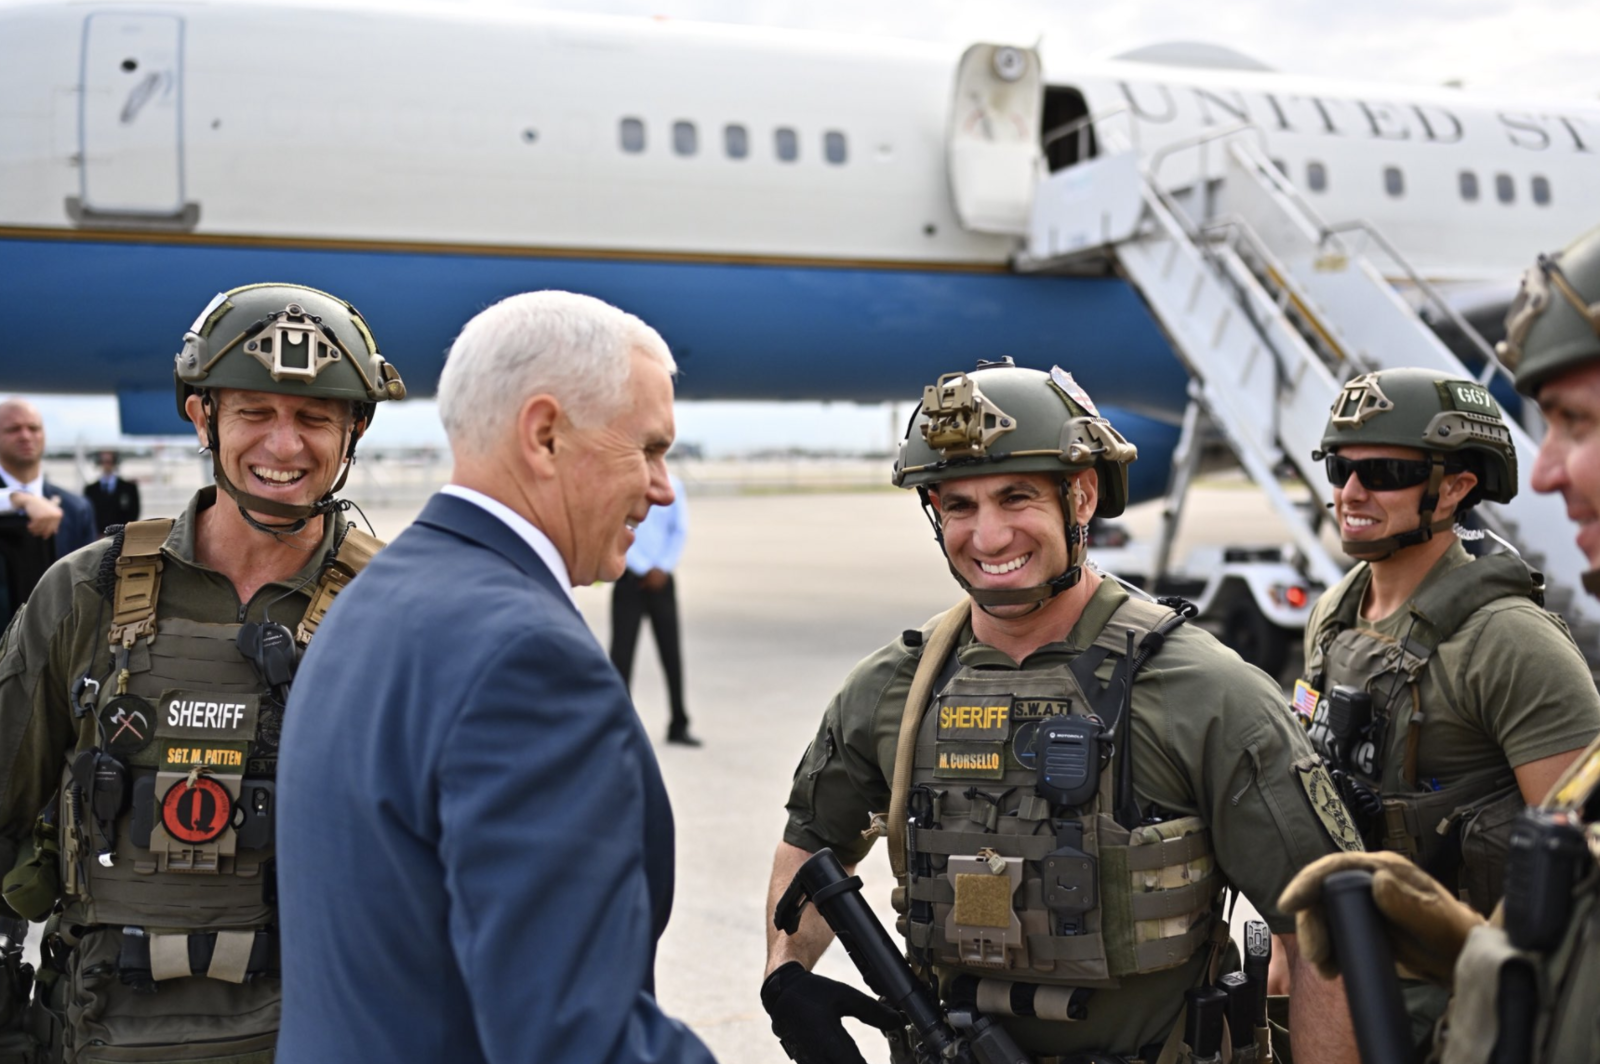 A Florida Deputy Was Kicked Off The SWAT Team After He Posed With Mike Pence Wearing A QAnon Conspiracy Patch